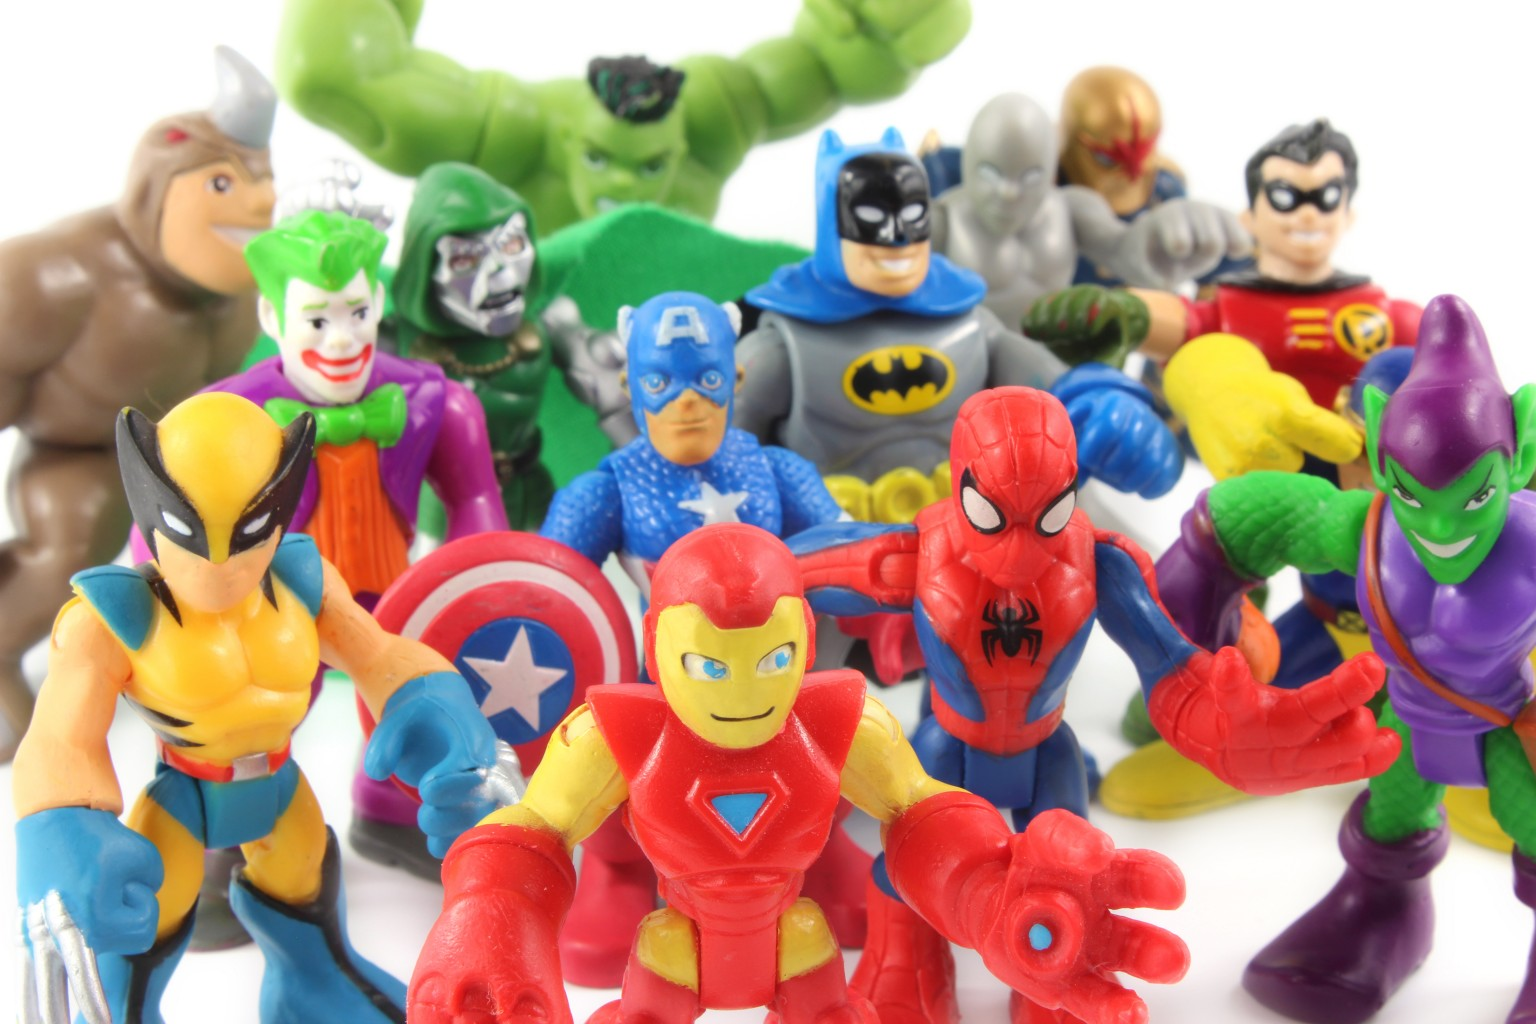 Bridging the Gap Between Pop Culture and IP: The Marvel Universe